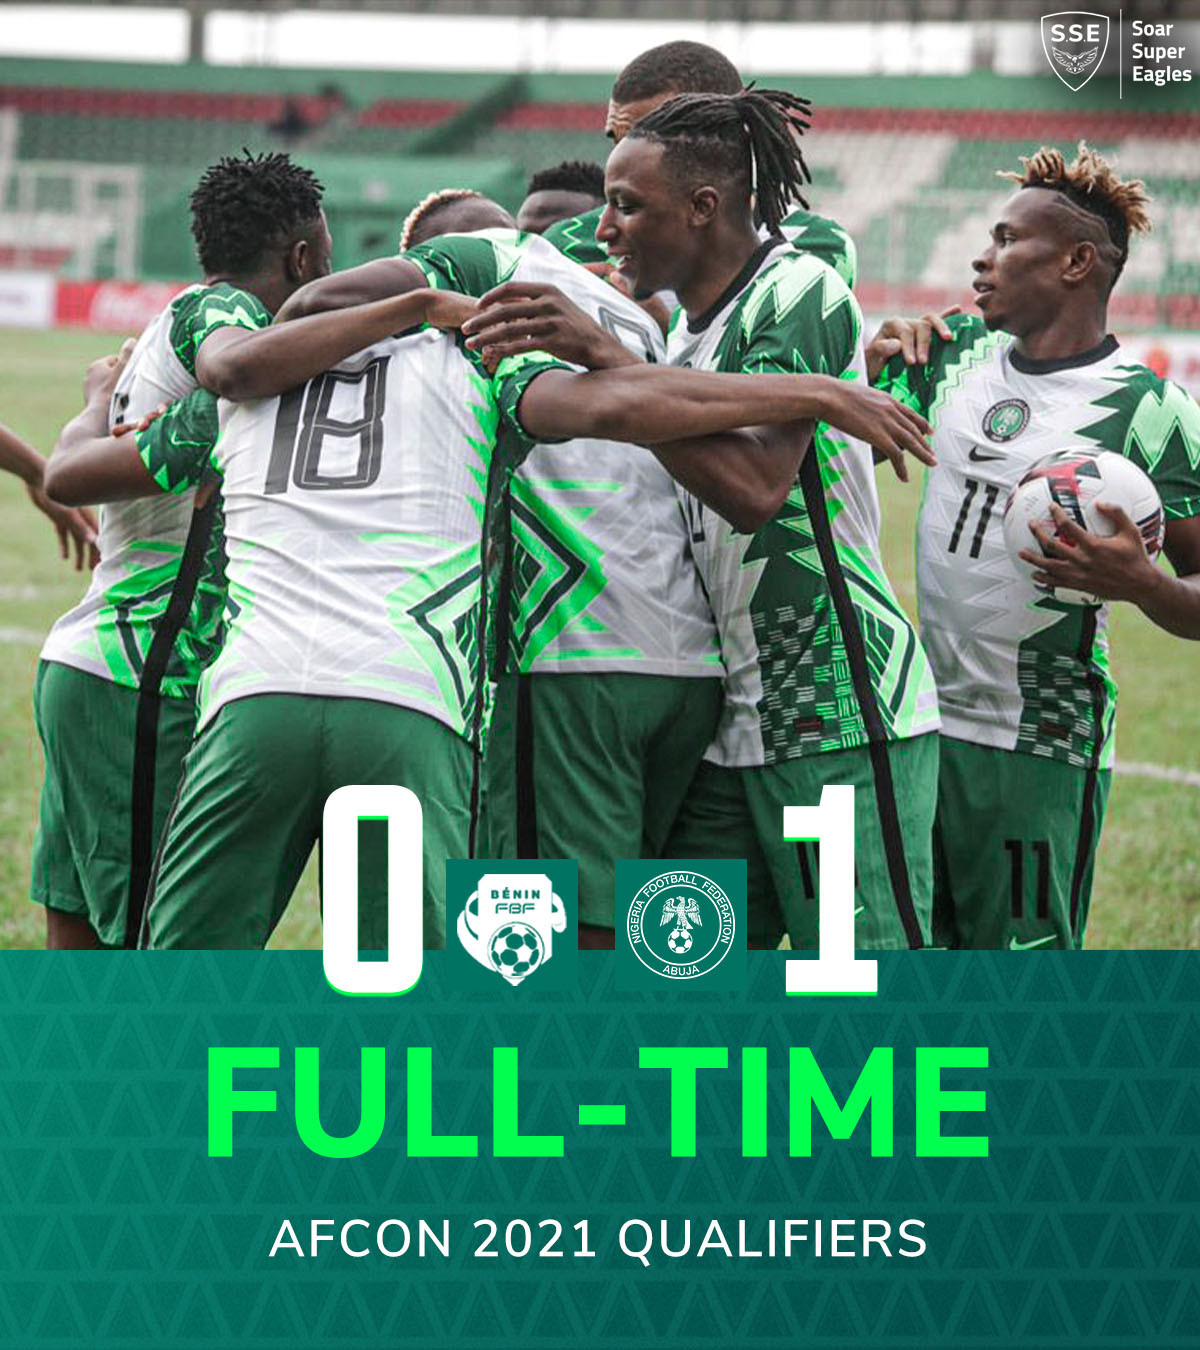 Paul Onuachu's goal helps Super Eagles defeat Benin 0-1 as Nigeria seal AFCON Qualification with a game to spare